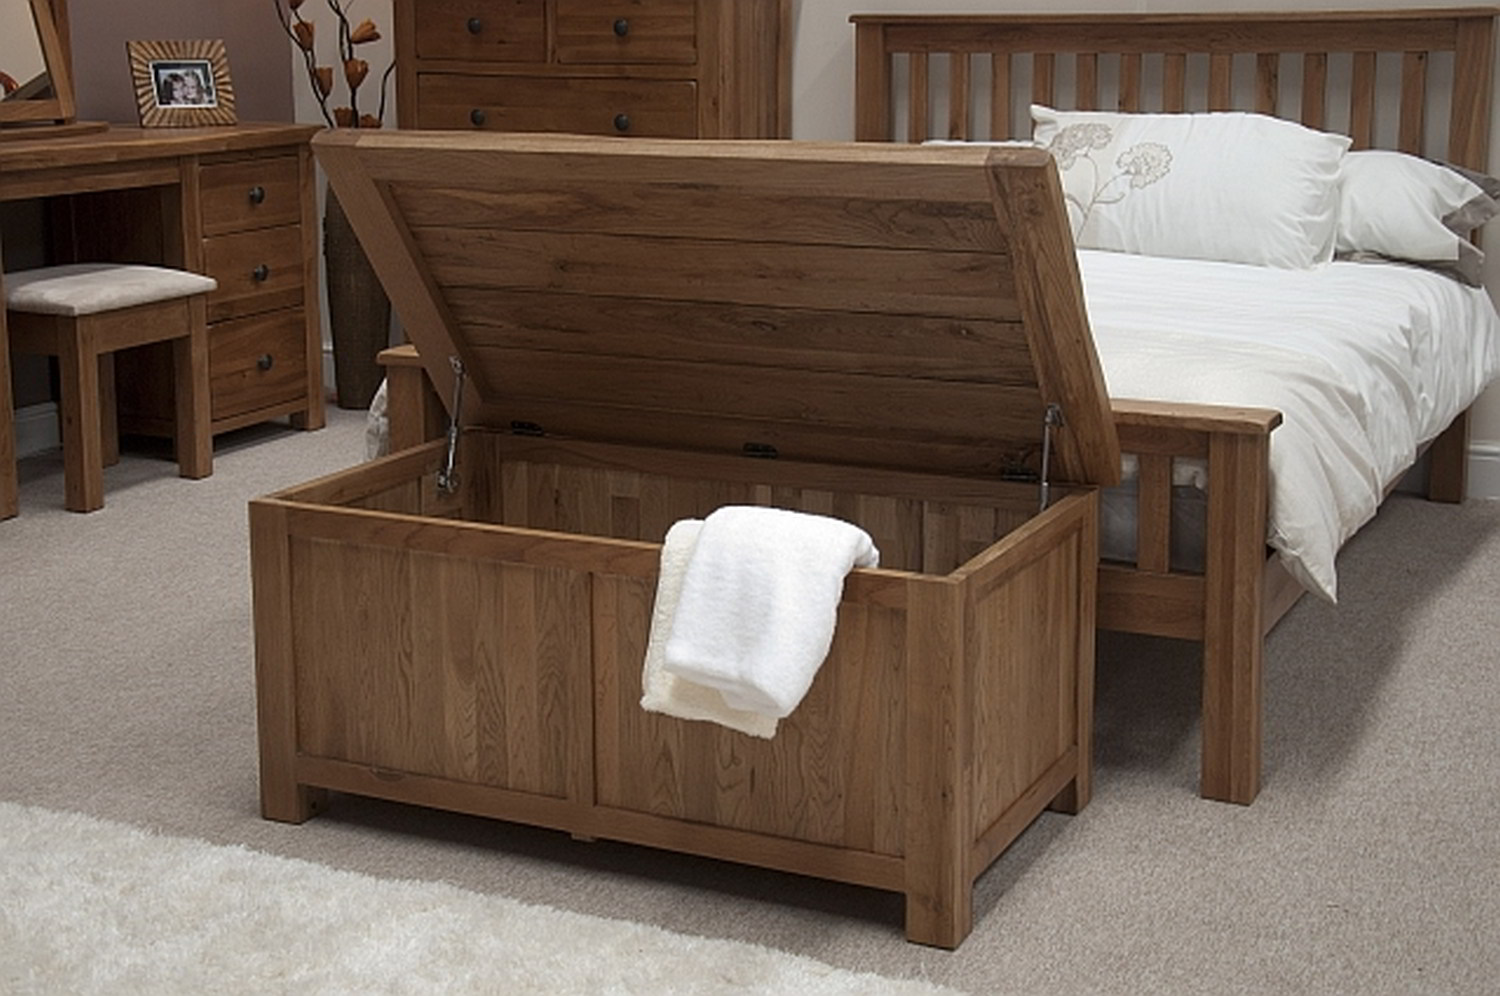 solid rustic oak bedroom furniture blanket storage box chest trunk